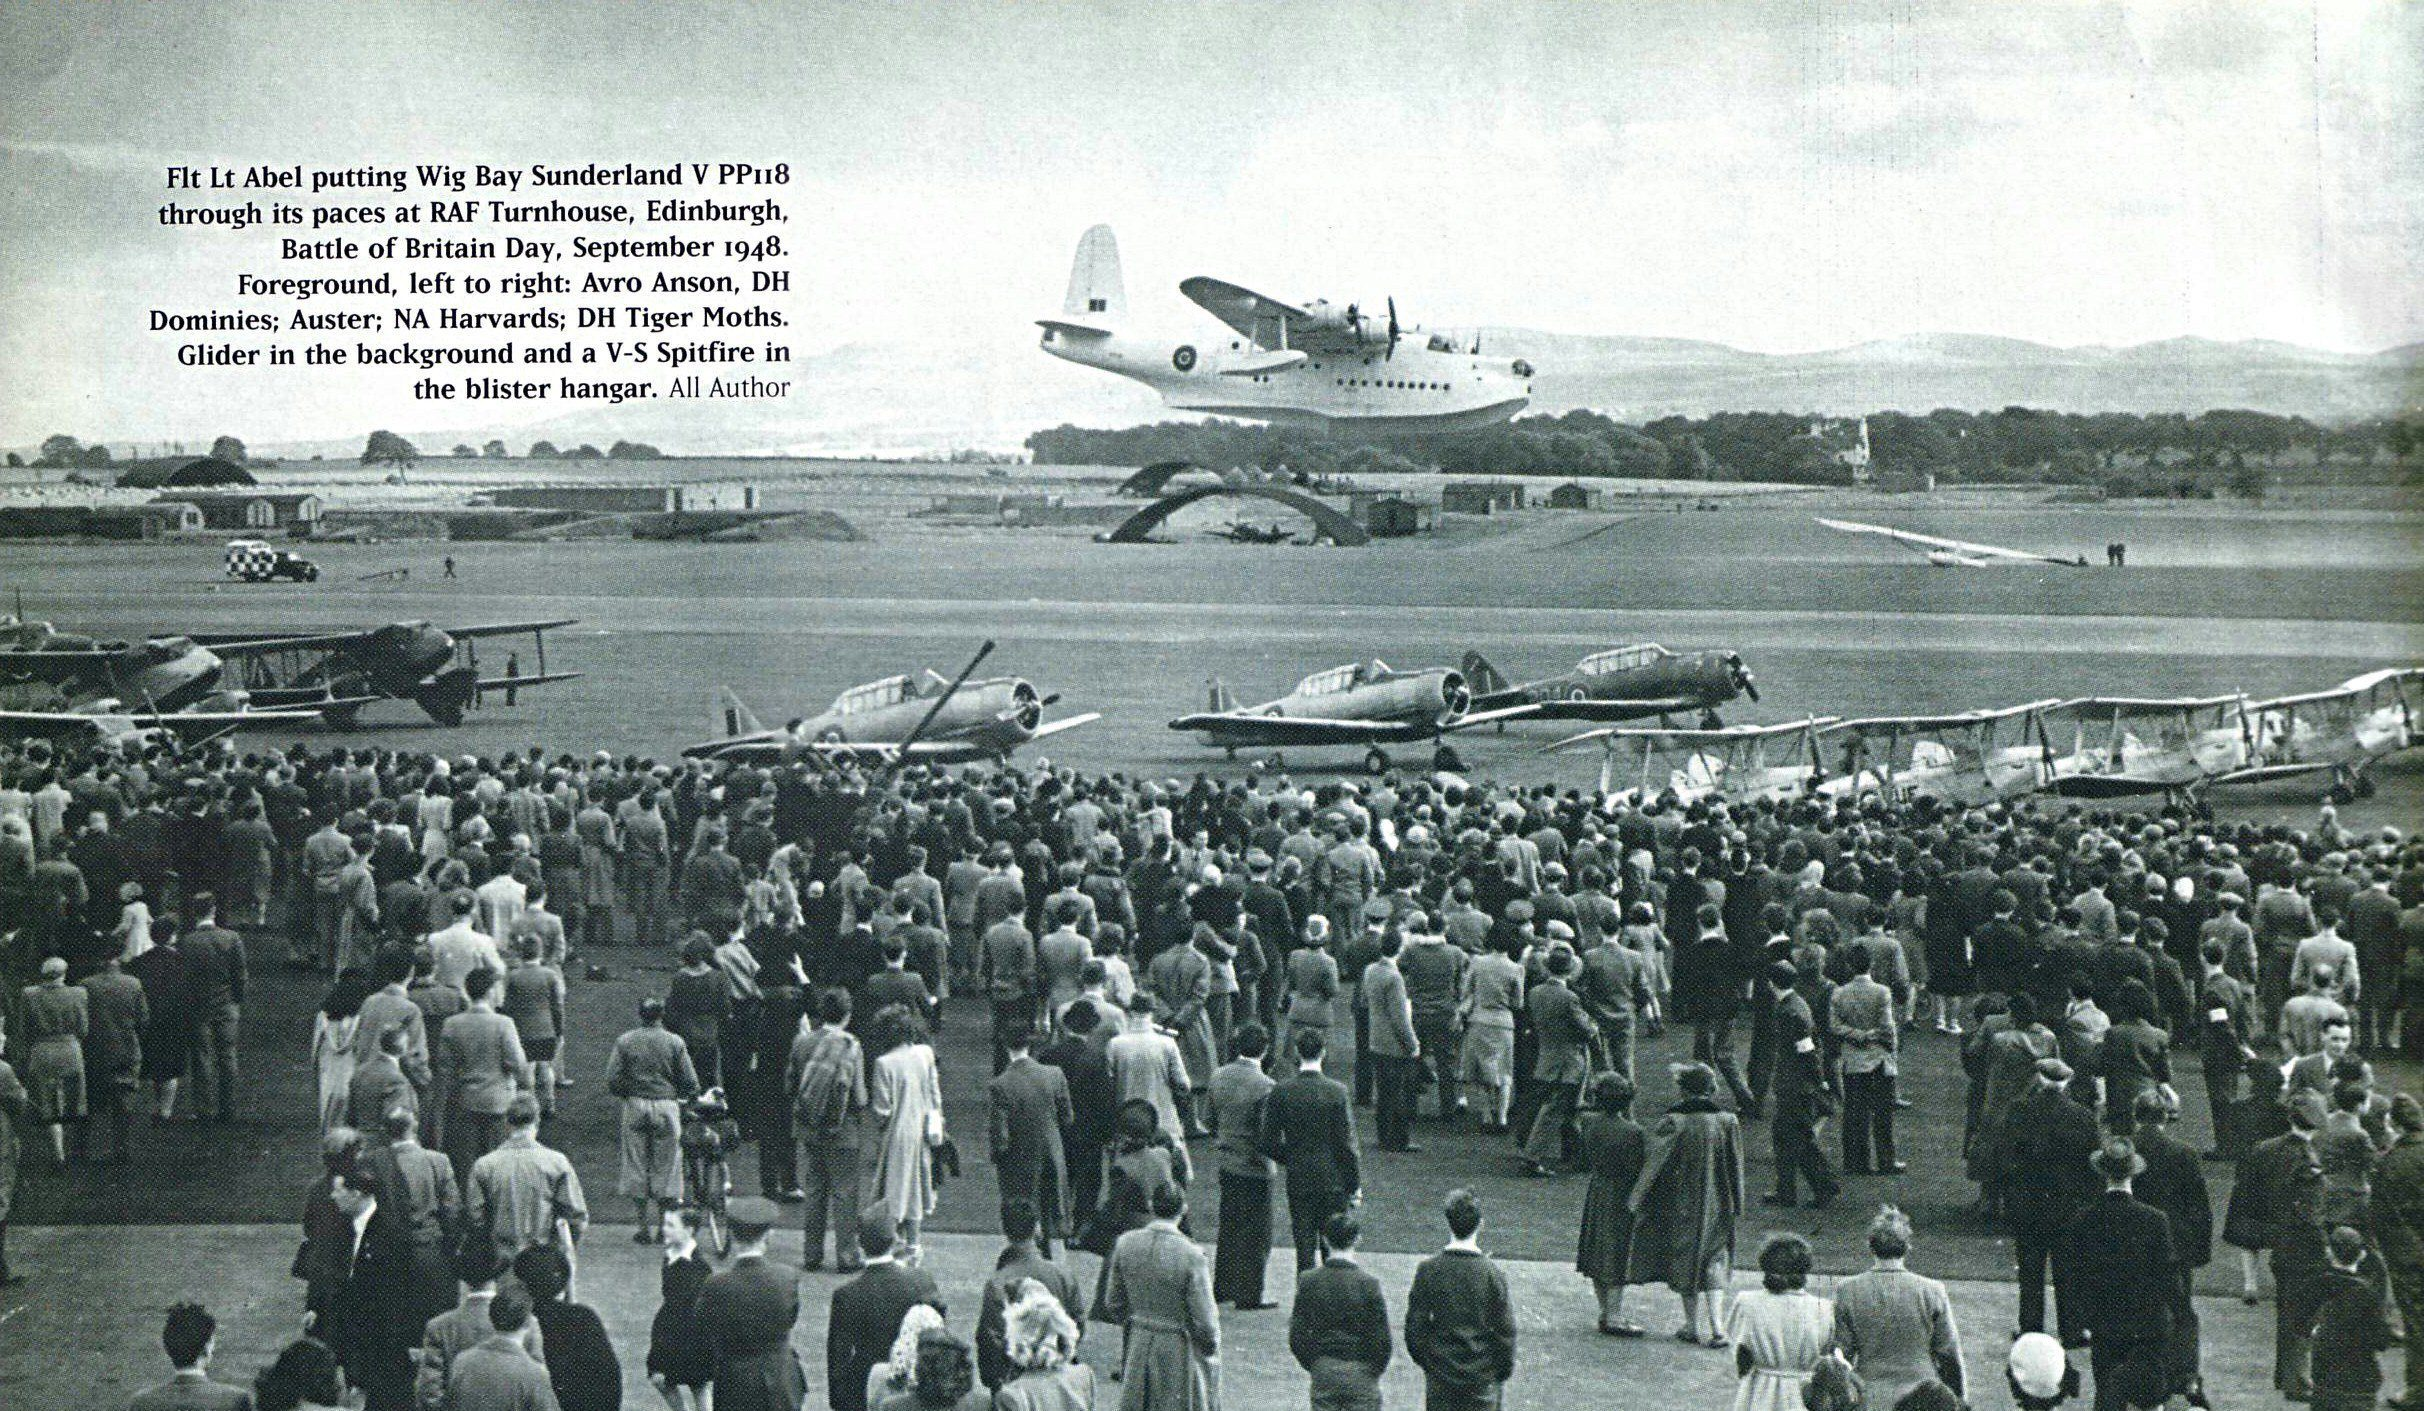 PP118 doing an Air Display in September 1948